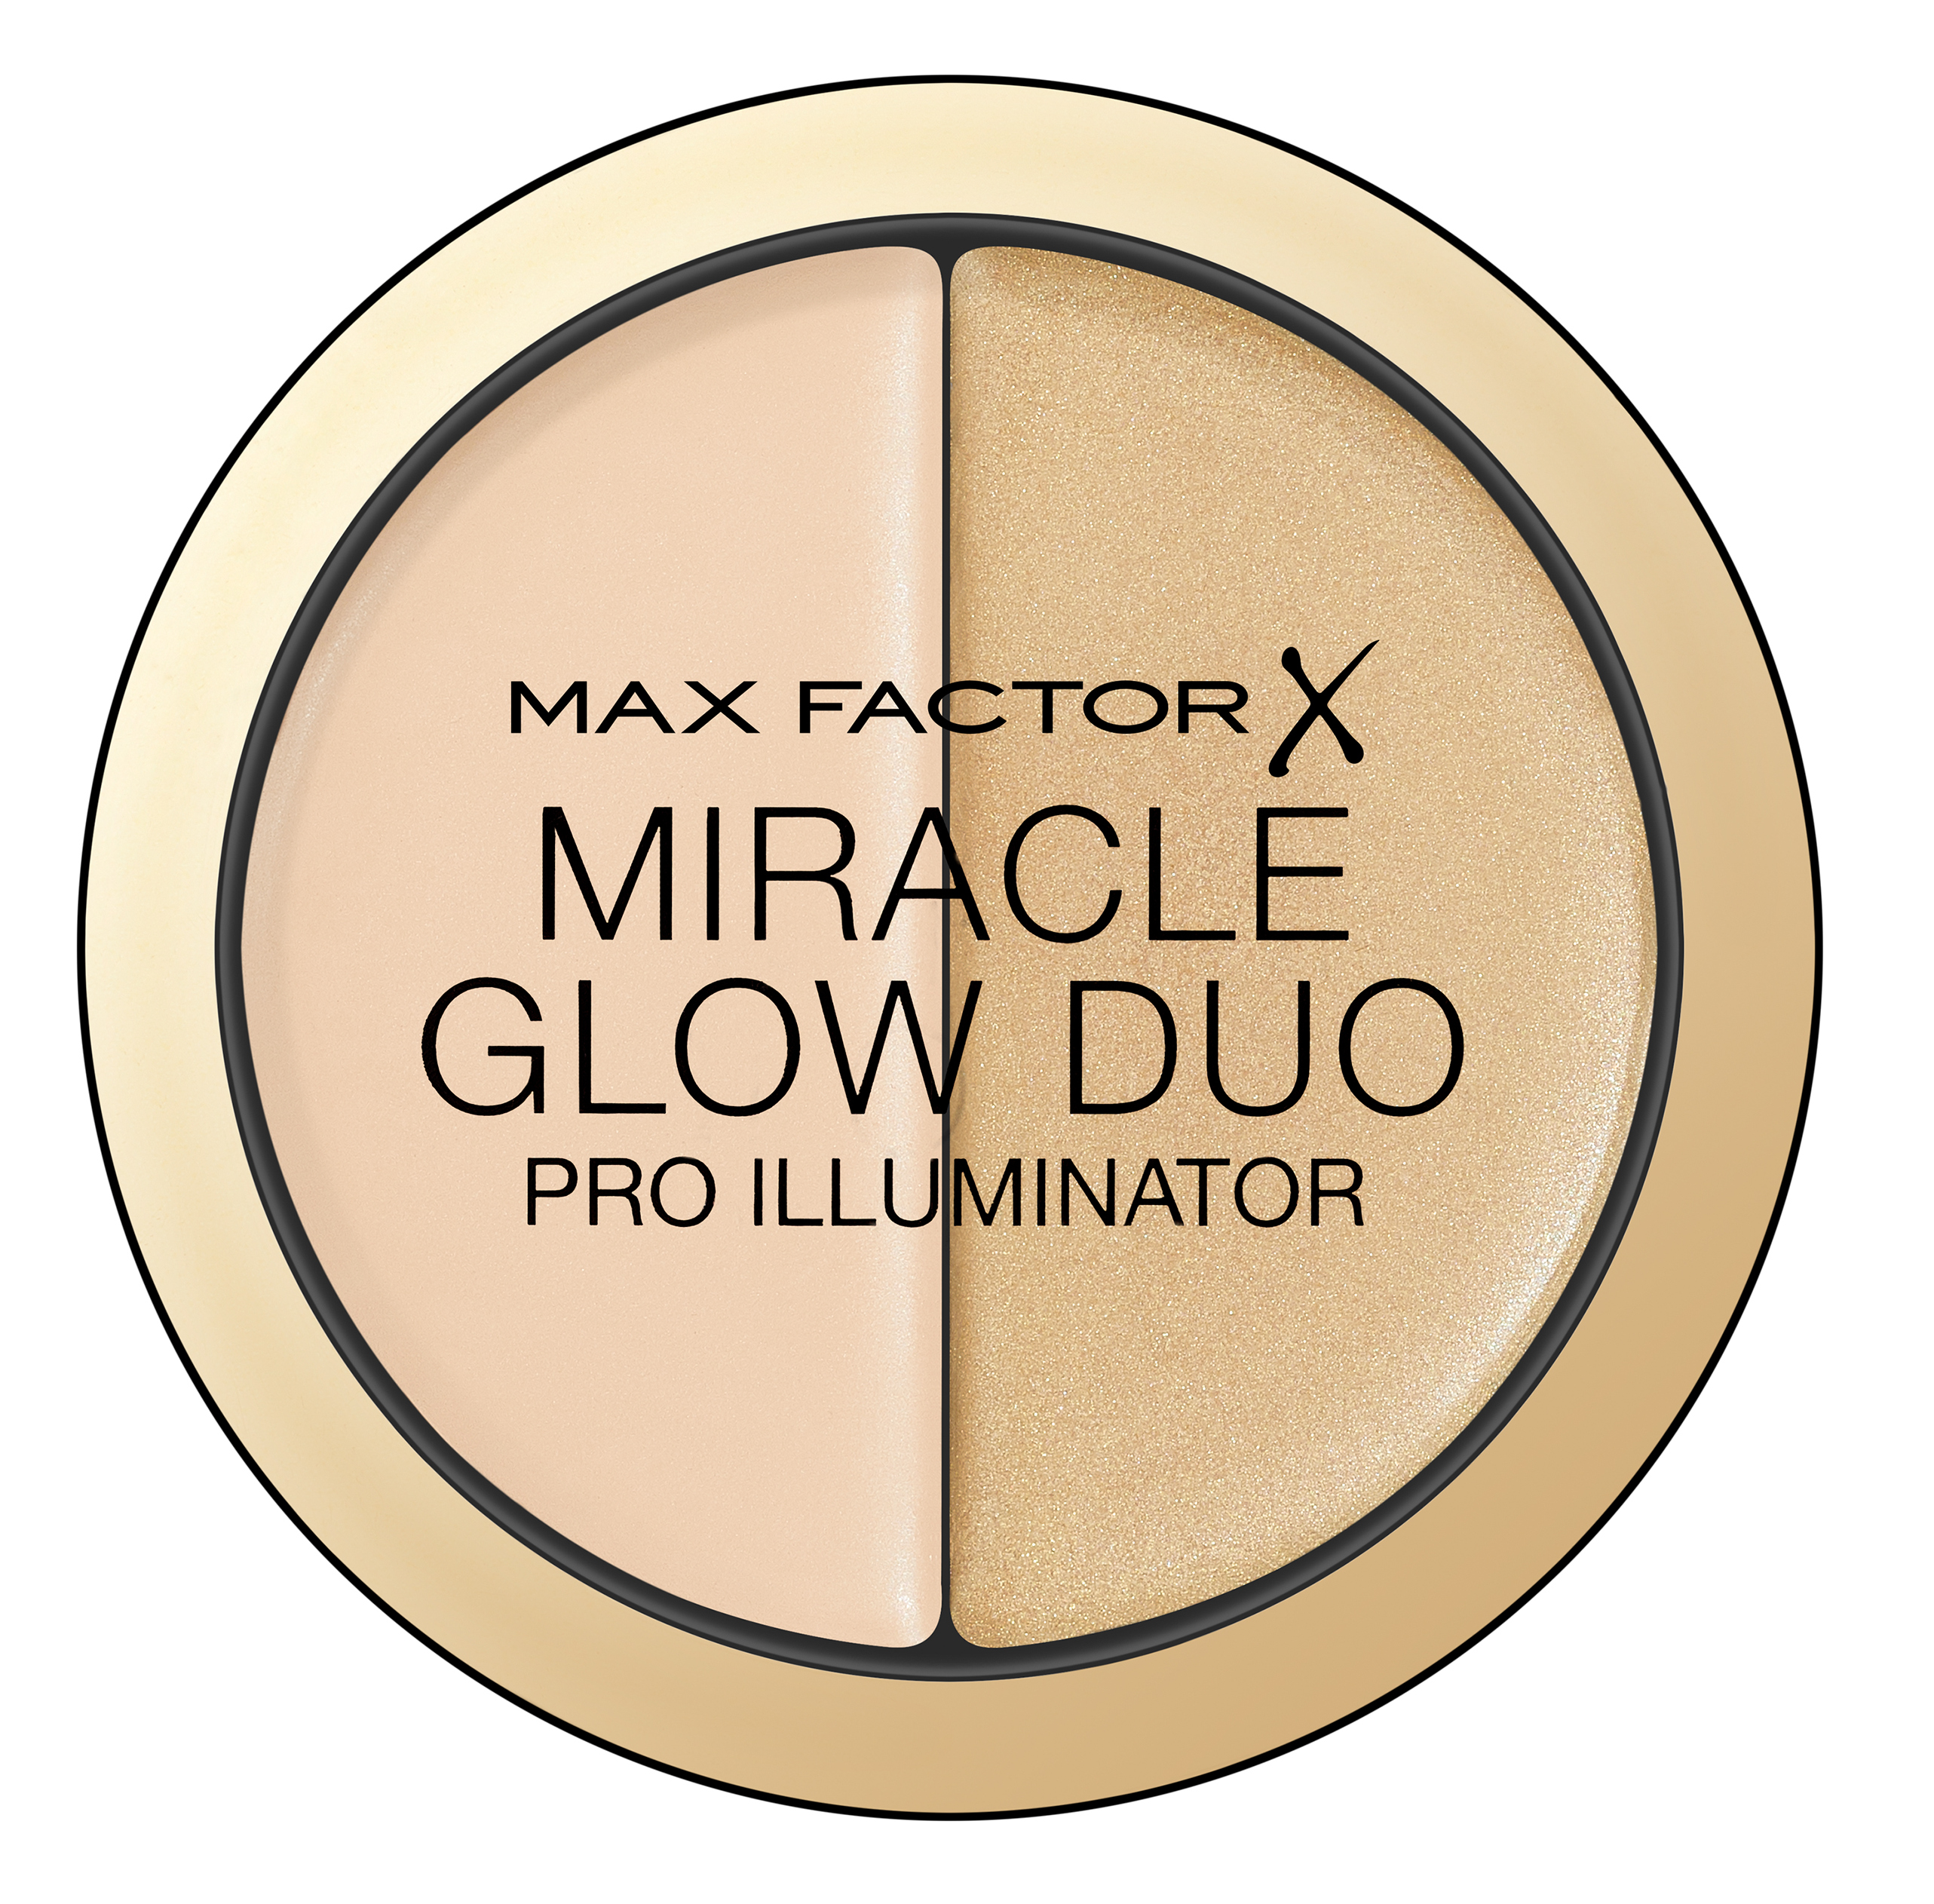 MAX FACTOR Хайлайтер 10 / Miracle Glow Duo light - Корректоры